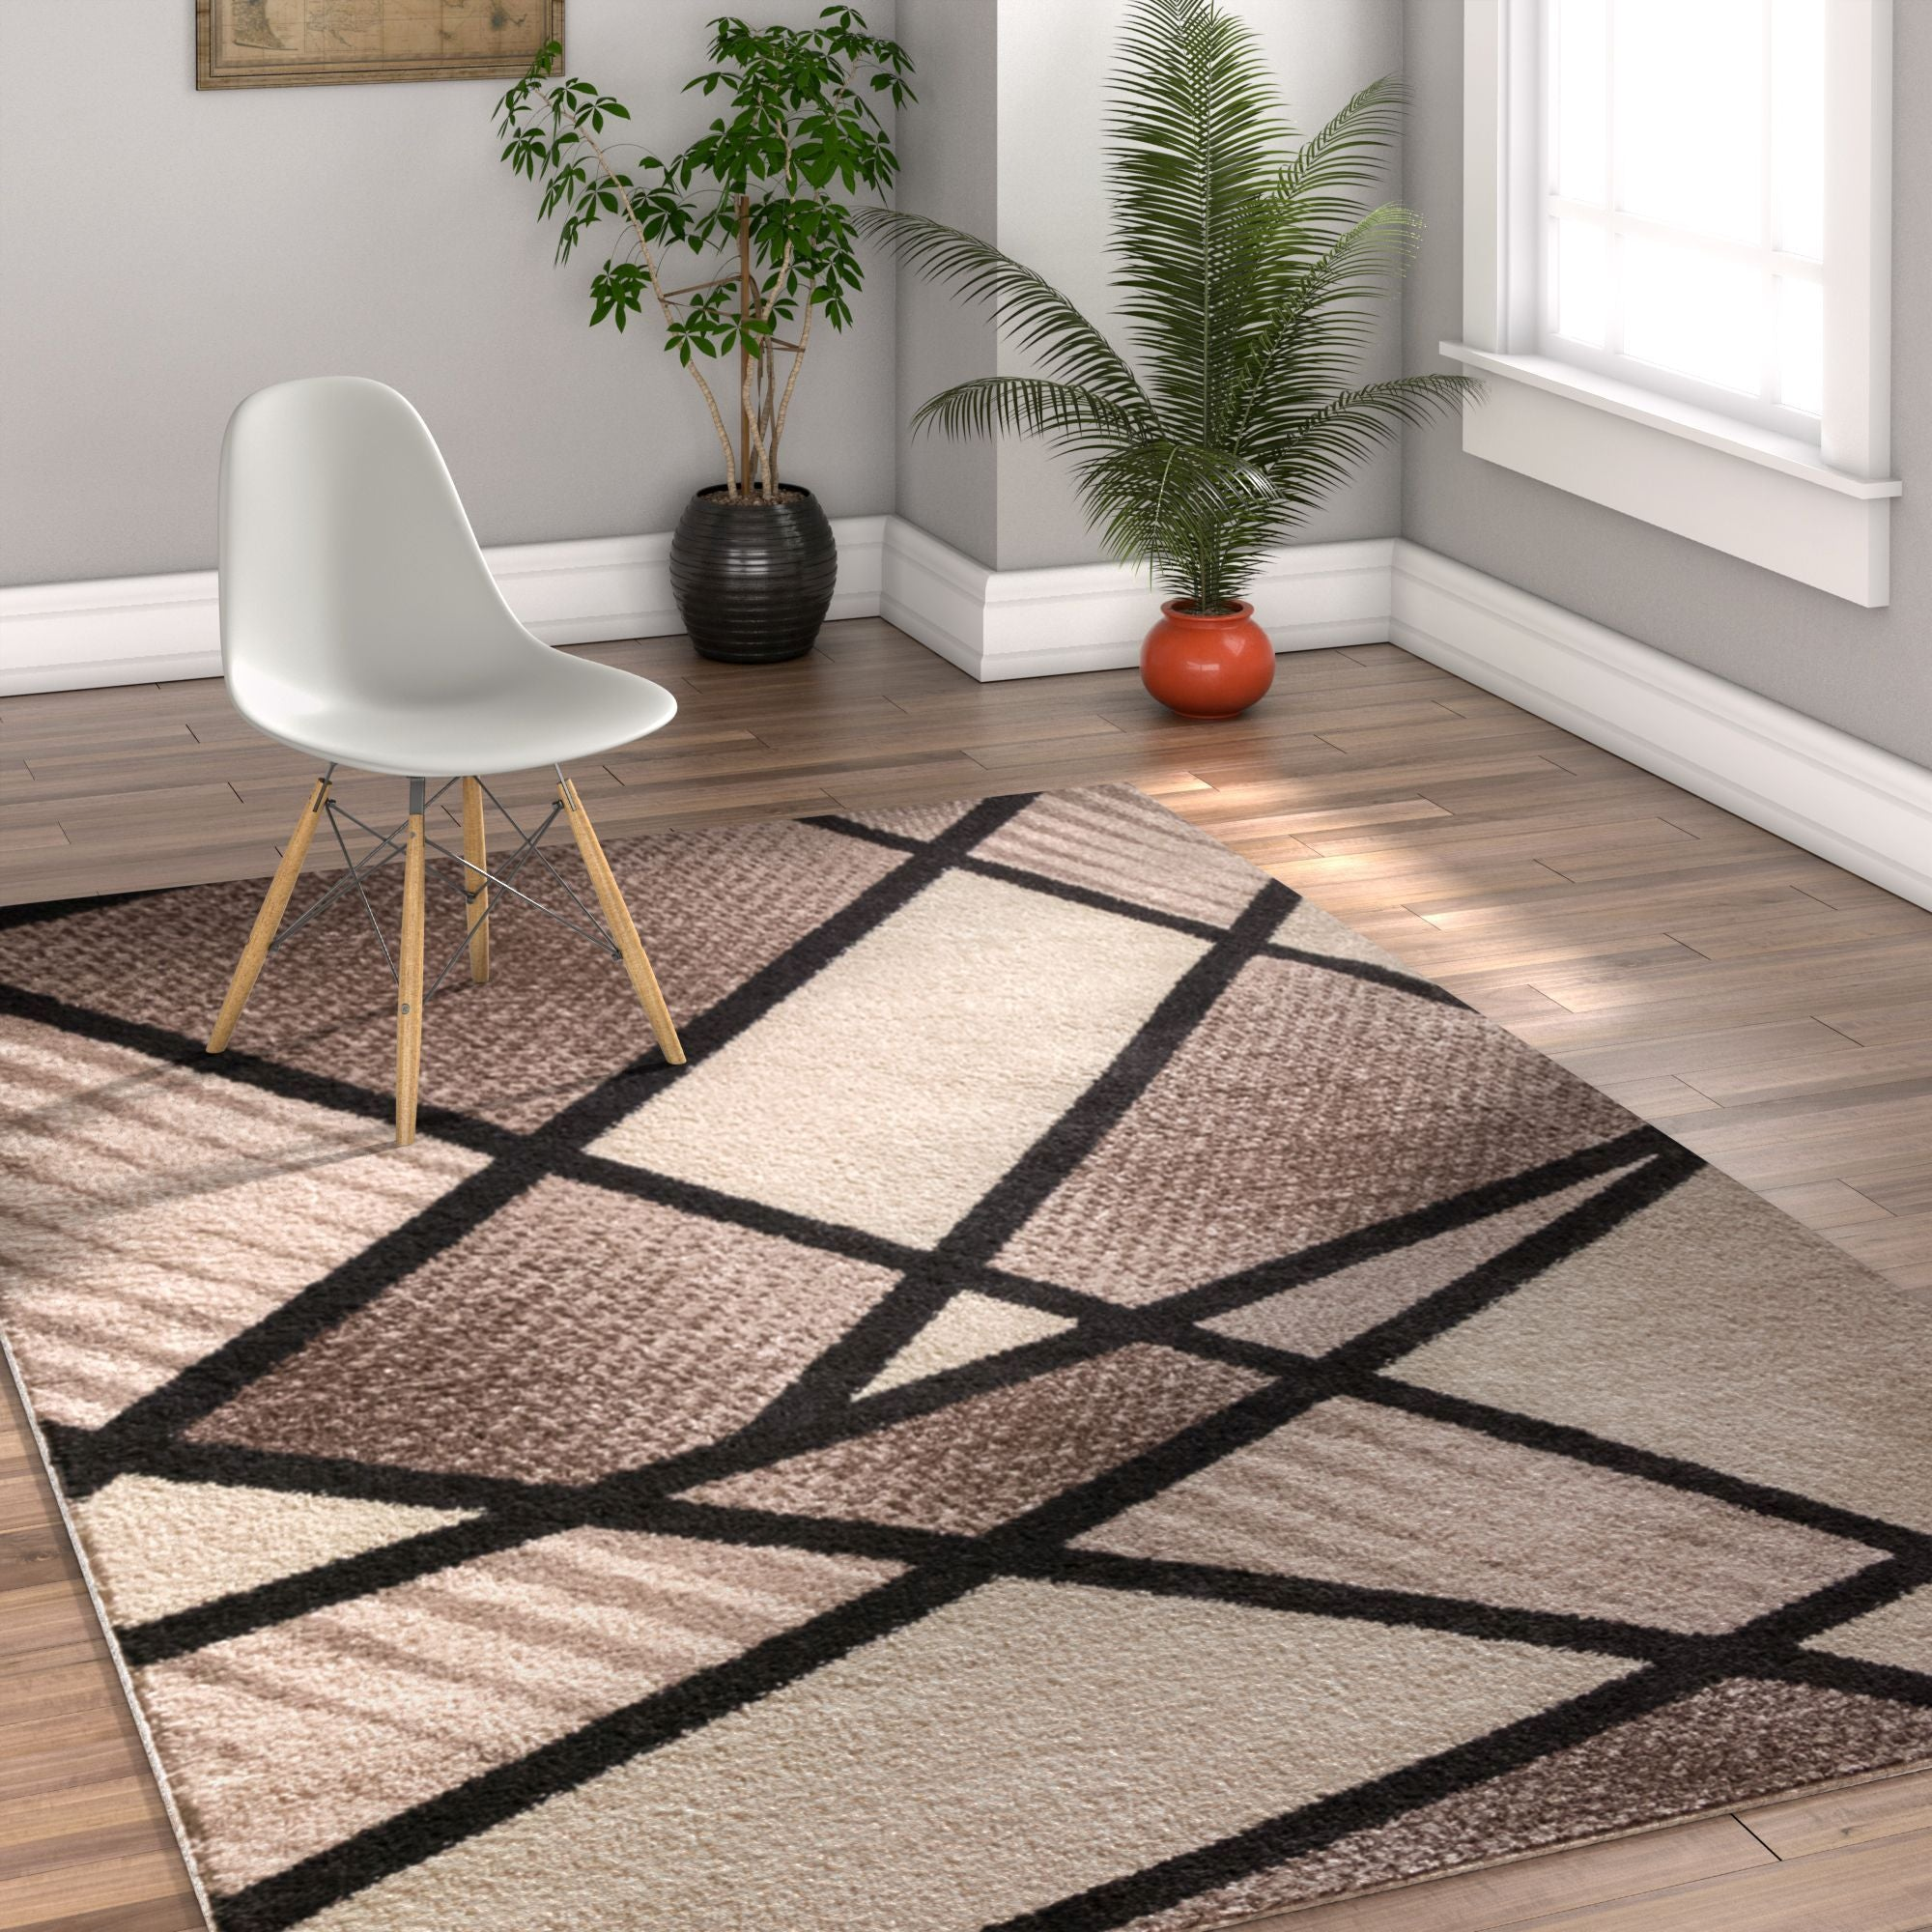 Soho Brown Beige Modern Geometric Boxes Stripes Triangles Area Rug Ruglots Com